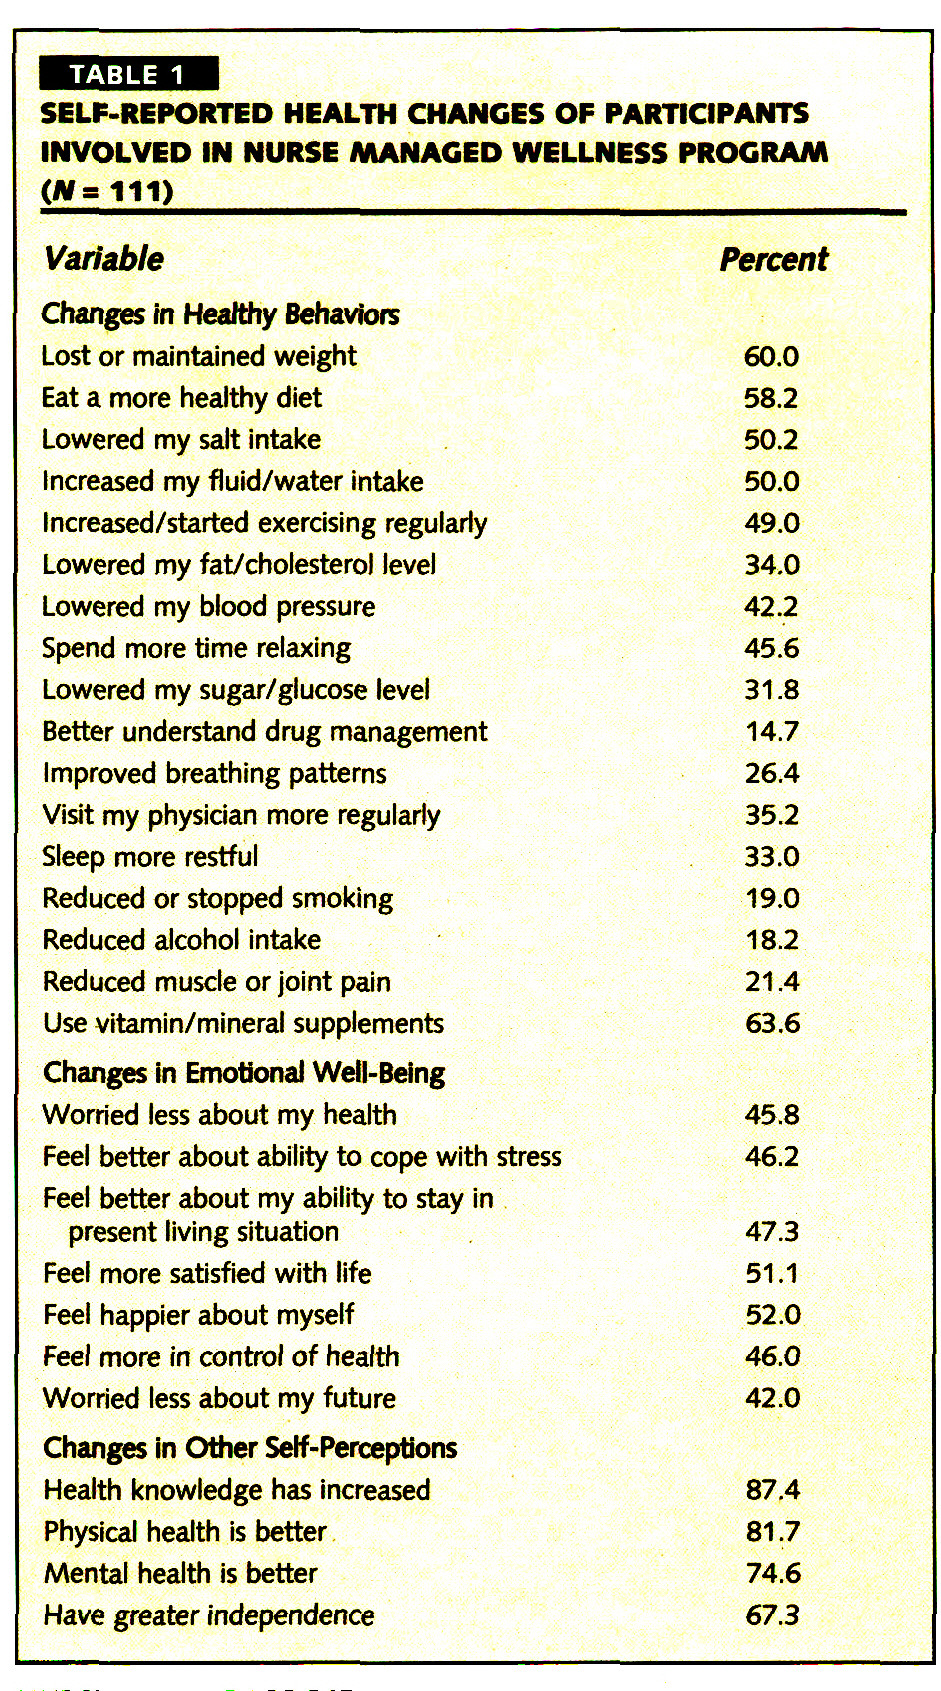 TABLE 1SiLP-REPORTED HEALTH CHANGES OF PARTICIPANTS INVOLVED IN NURSE MANAGED WELLNESS PROGRAM (W=111)